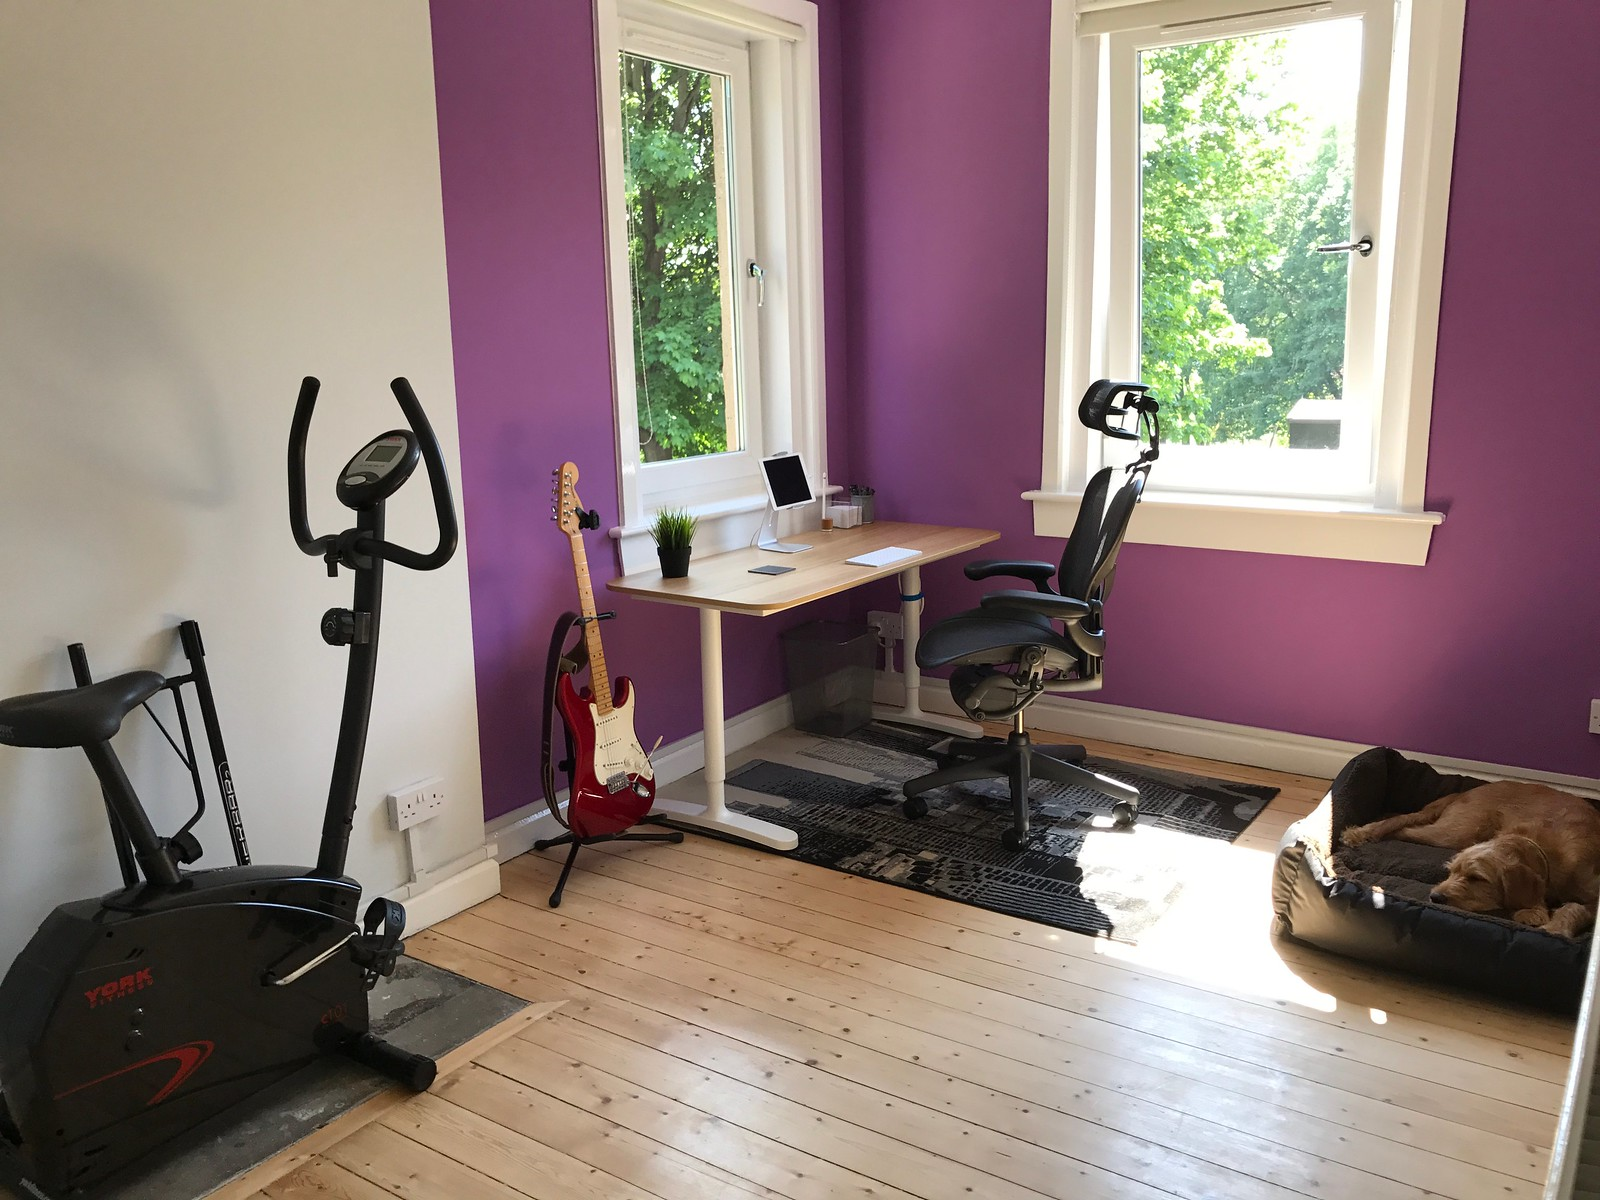 A wider angle of the final office, showing the exercise bike in place as per the concept.